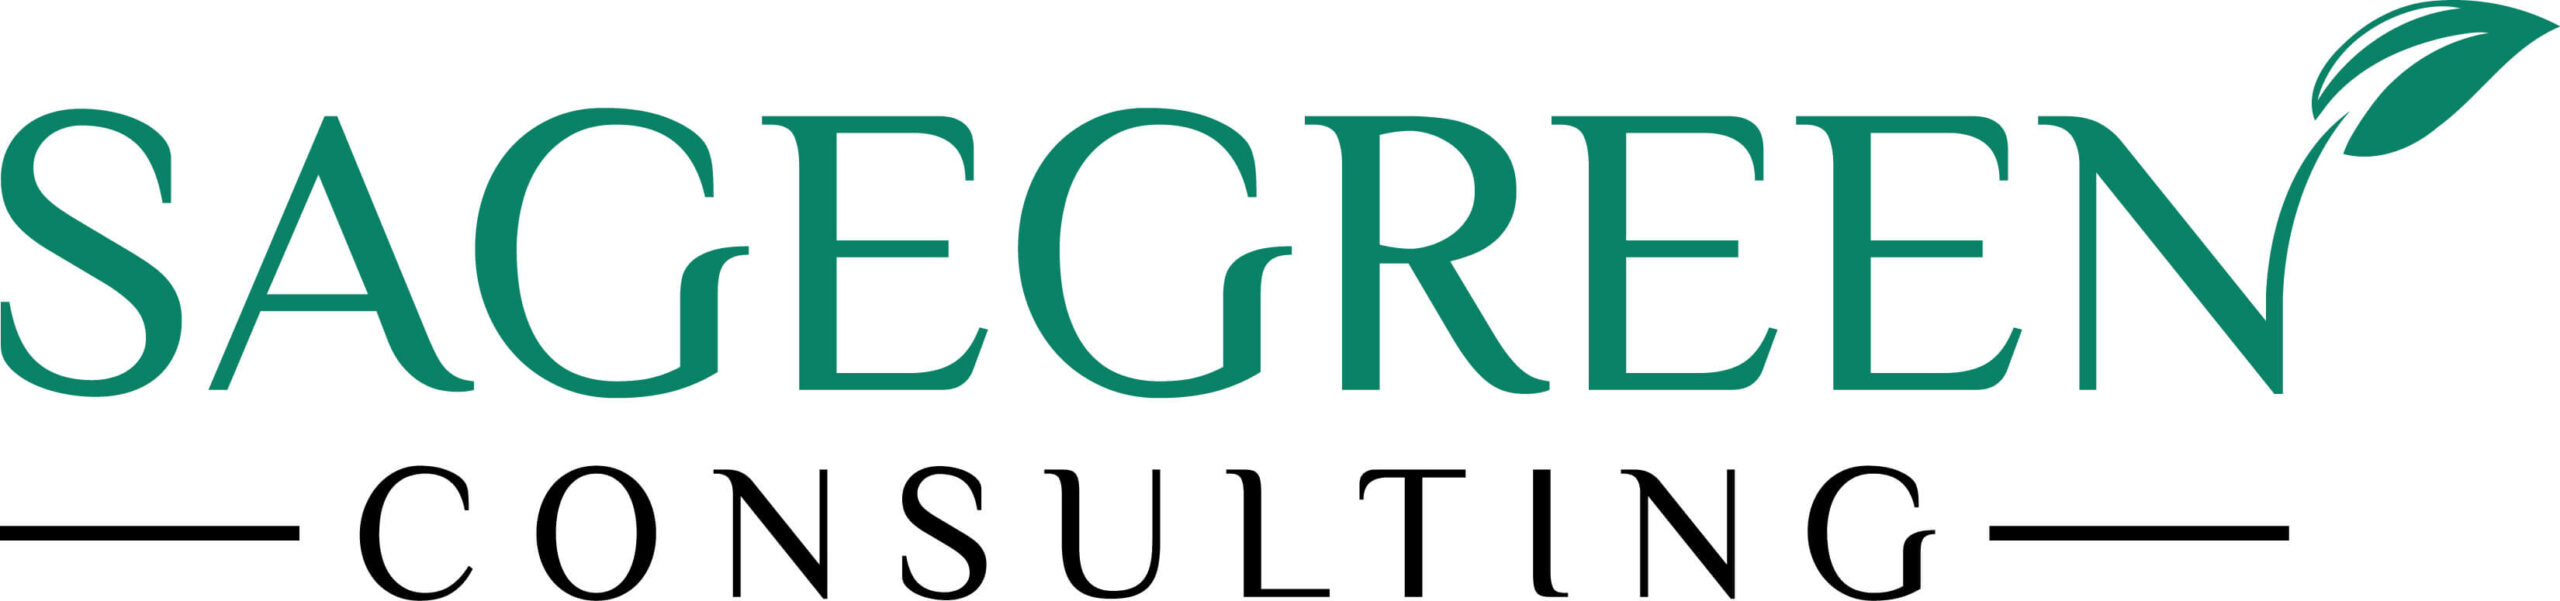 Sagegreen Consulting